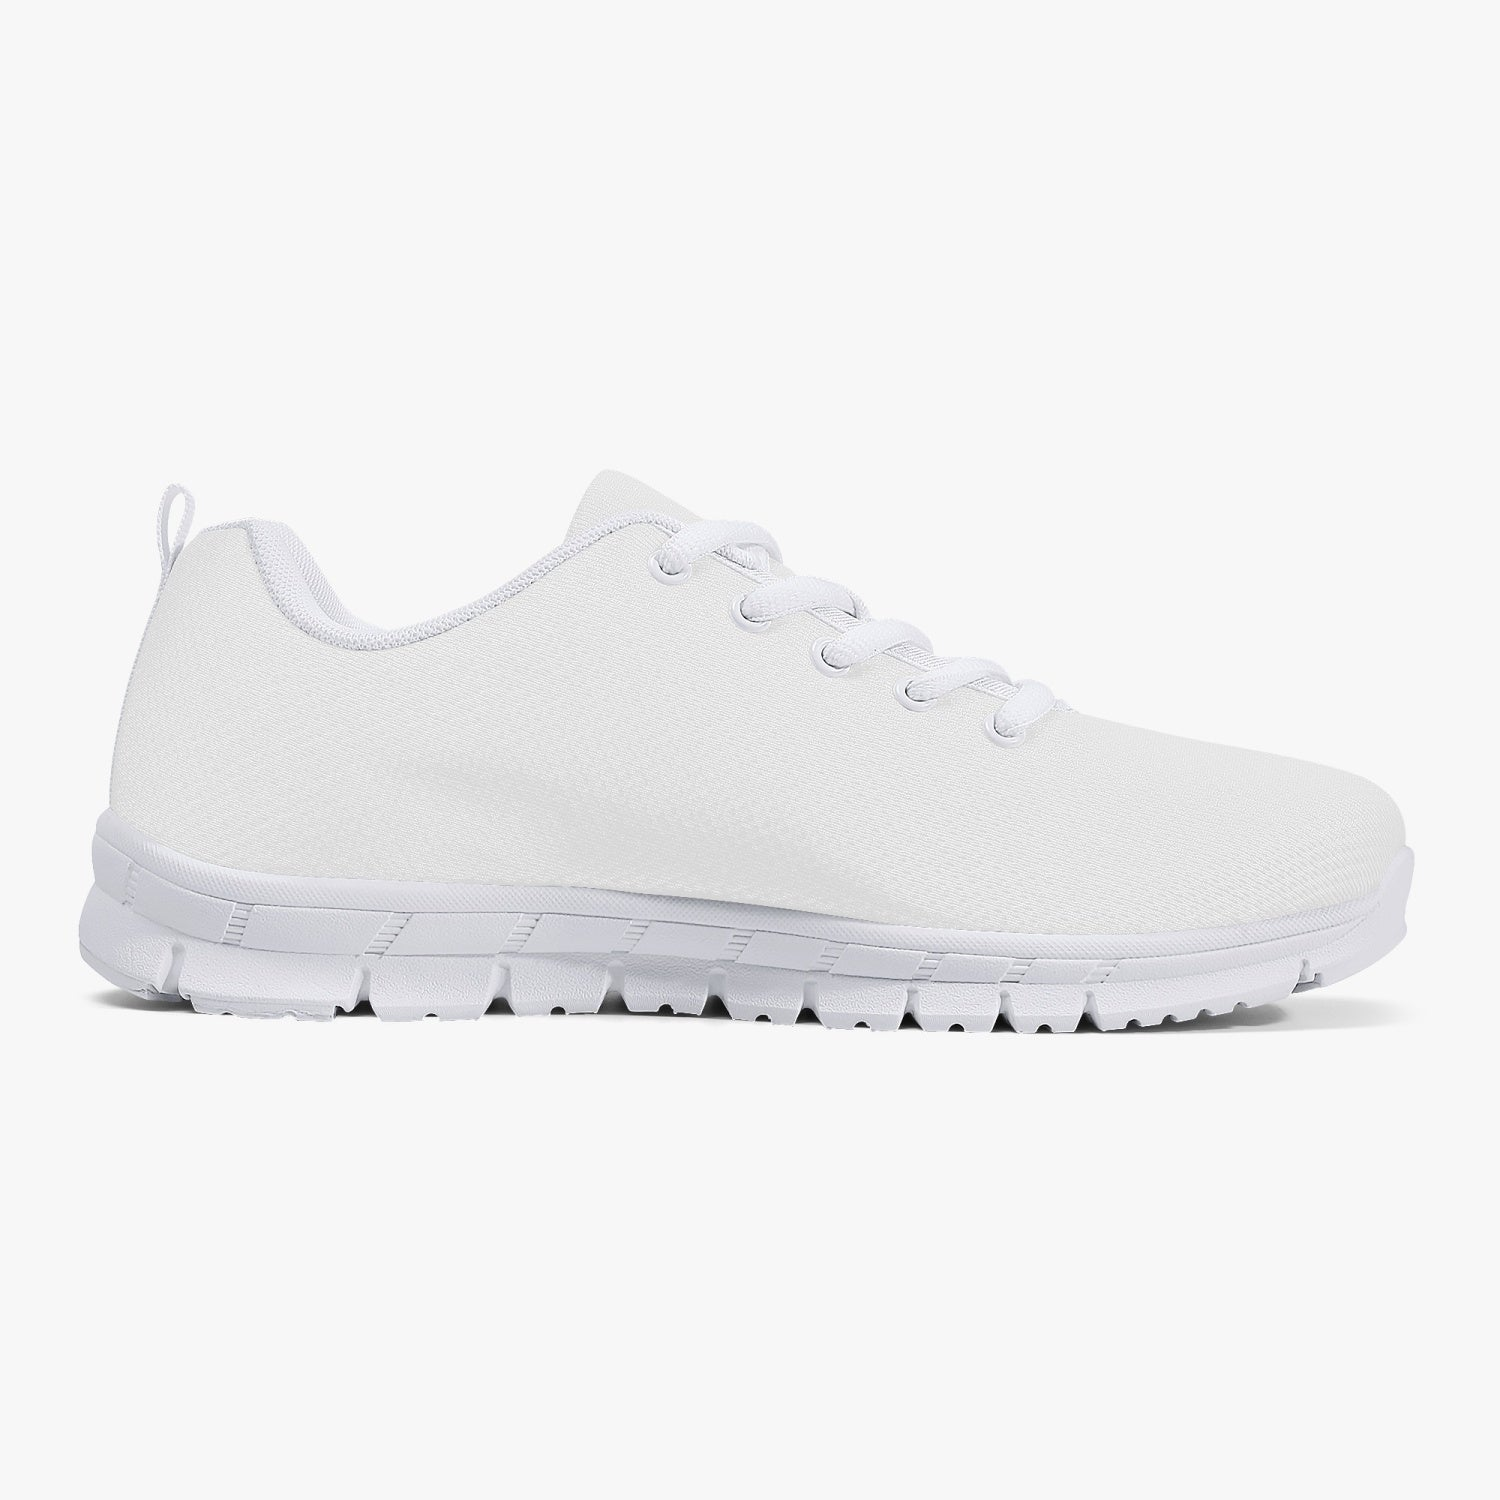 gf Classic Lightweight Mesh Sneakers - White/Black